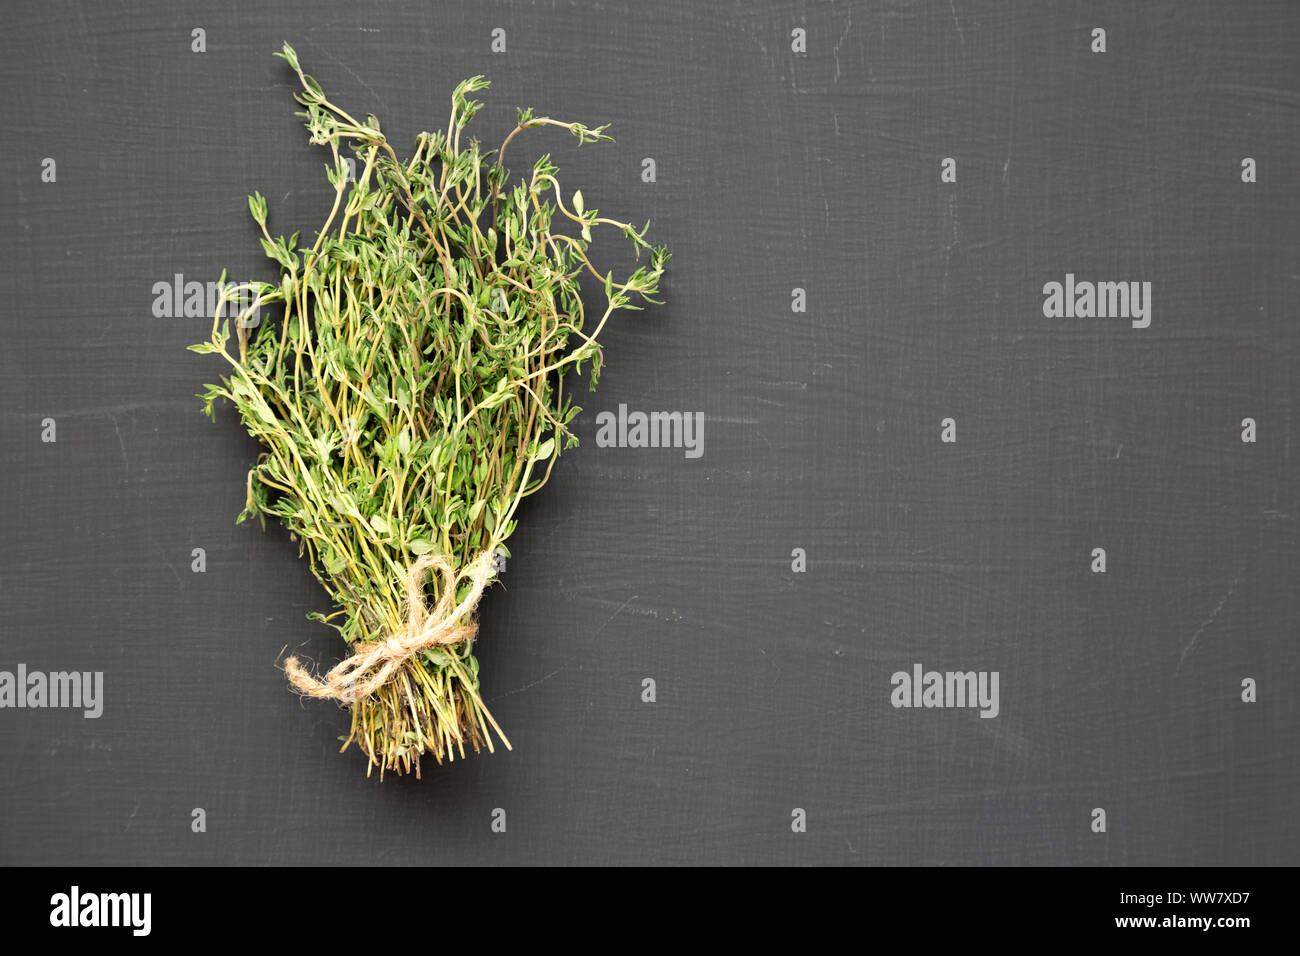 Raw organic fresh thyme on a black background, top view. Flat lay, overhead, from above. Copy space. Stock Photo